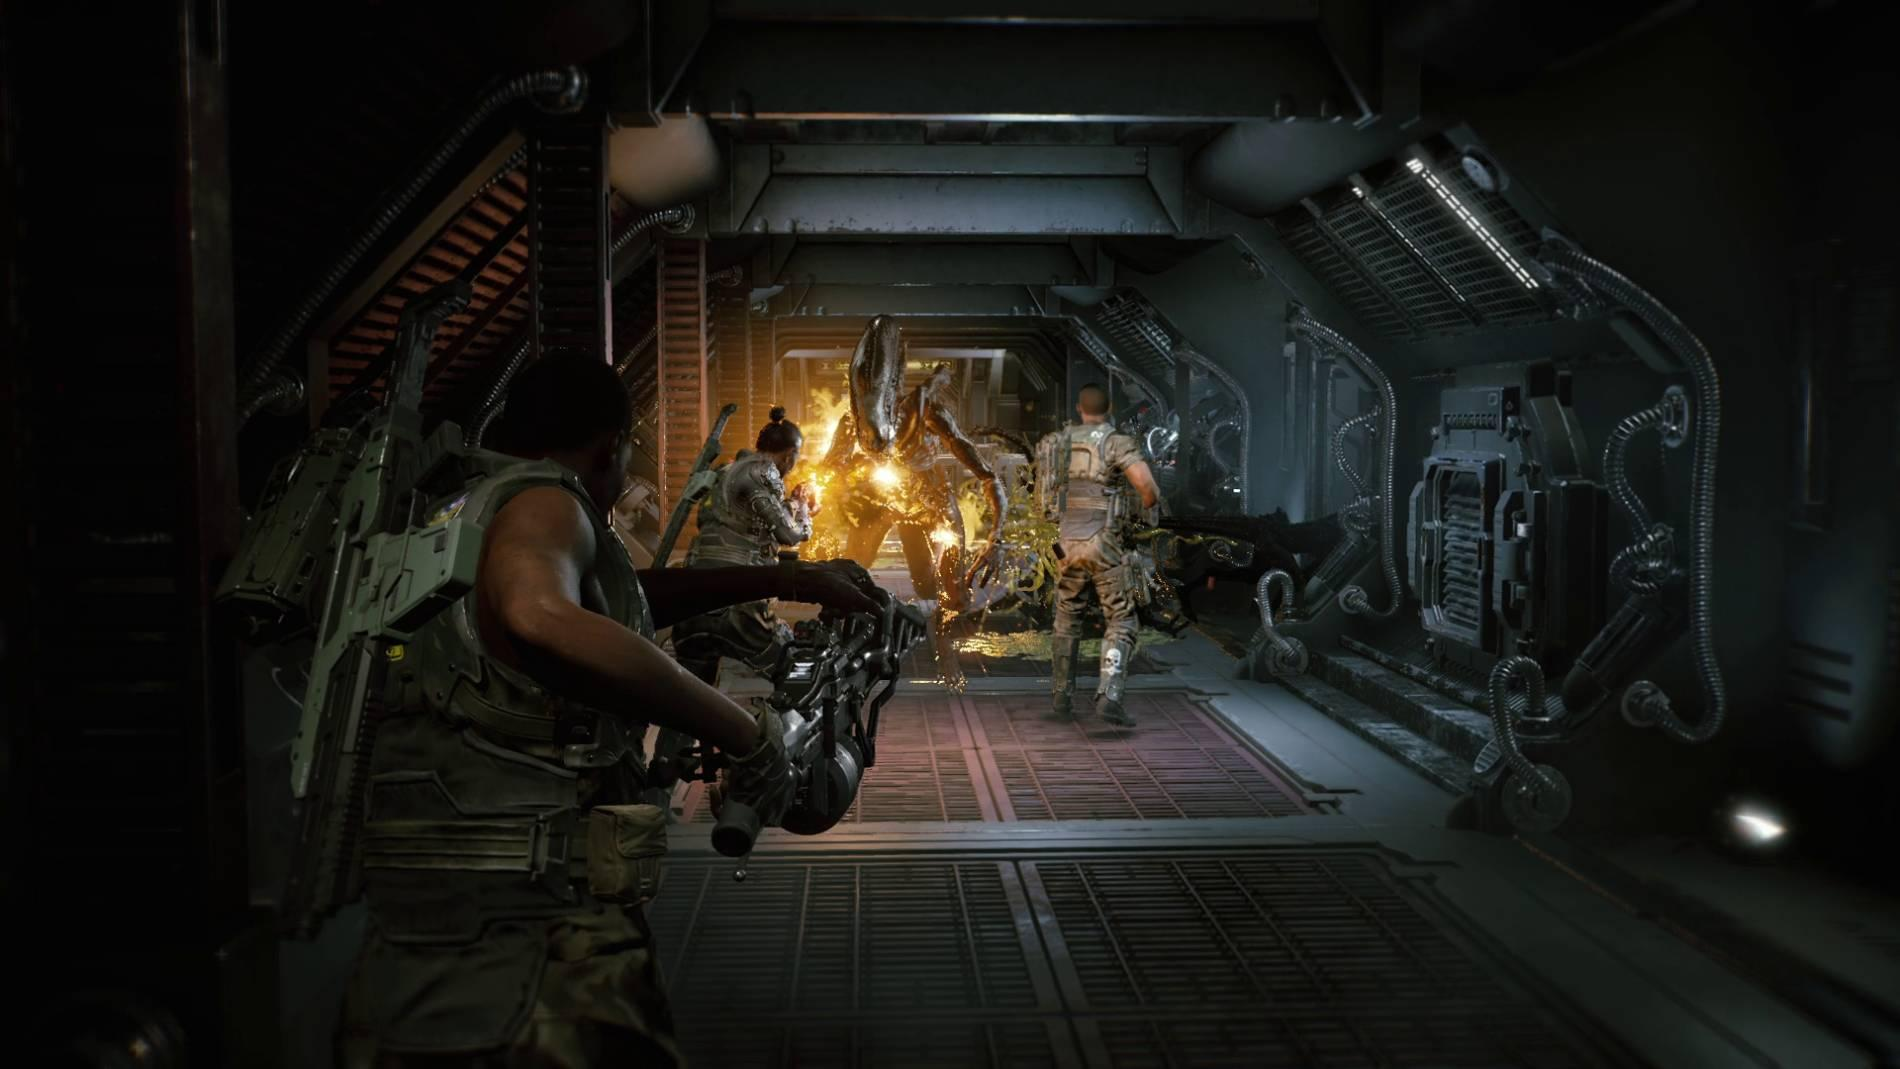 Aliens Fireteam is a third-person co-op shooter set in the Aliens universe, pitting squads of three players against the Xenomorph swarm